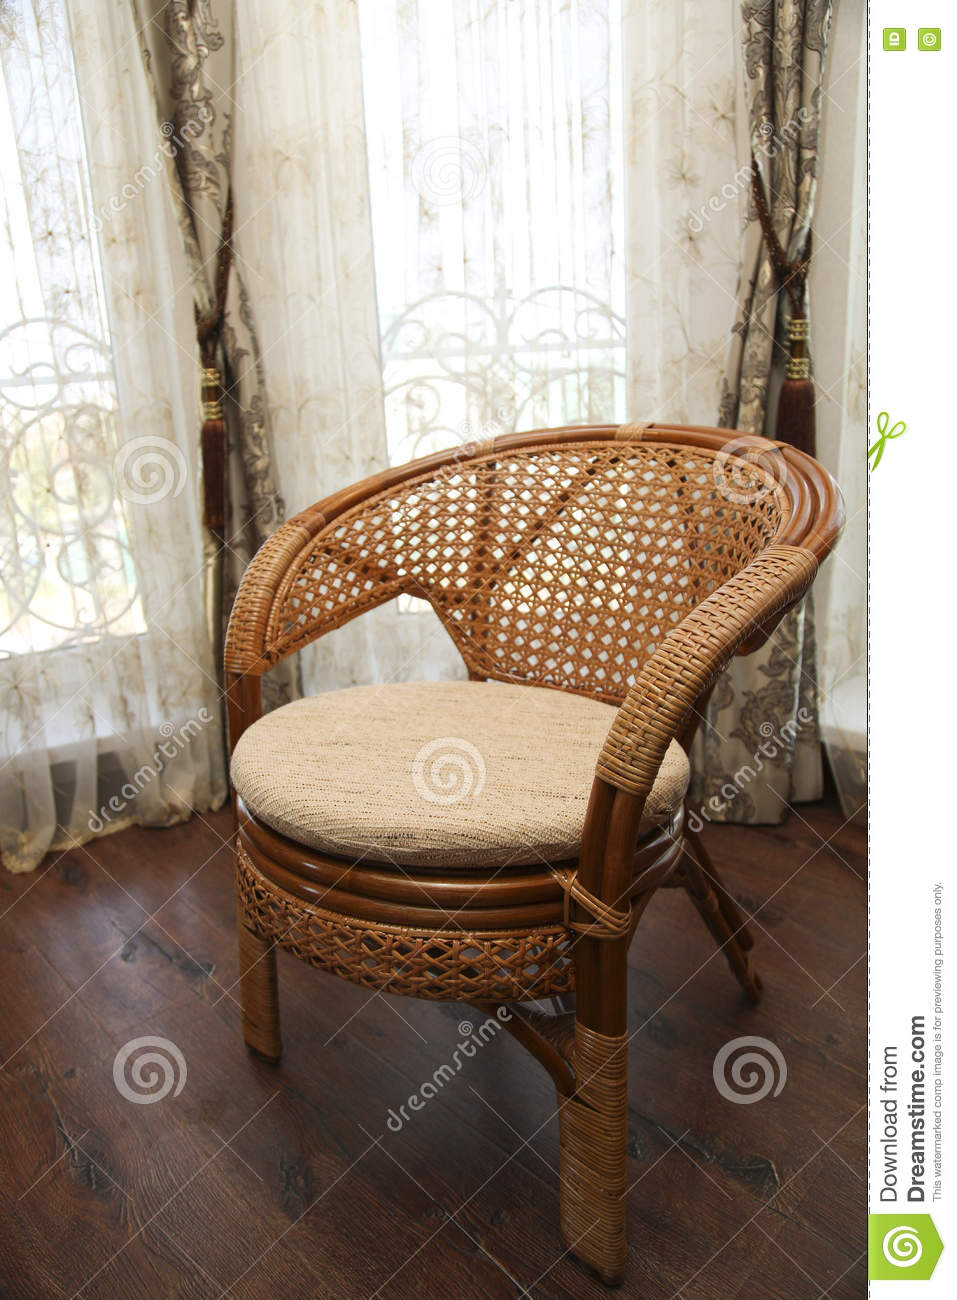 Modern interior with nice furniture inside wicker chair in the